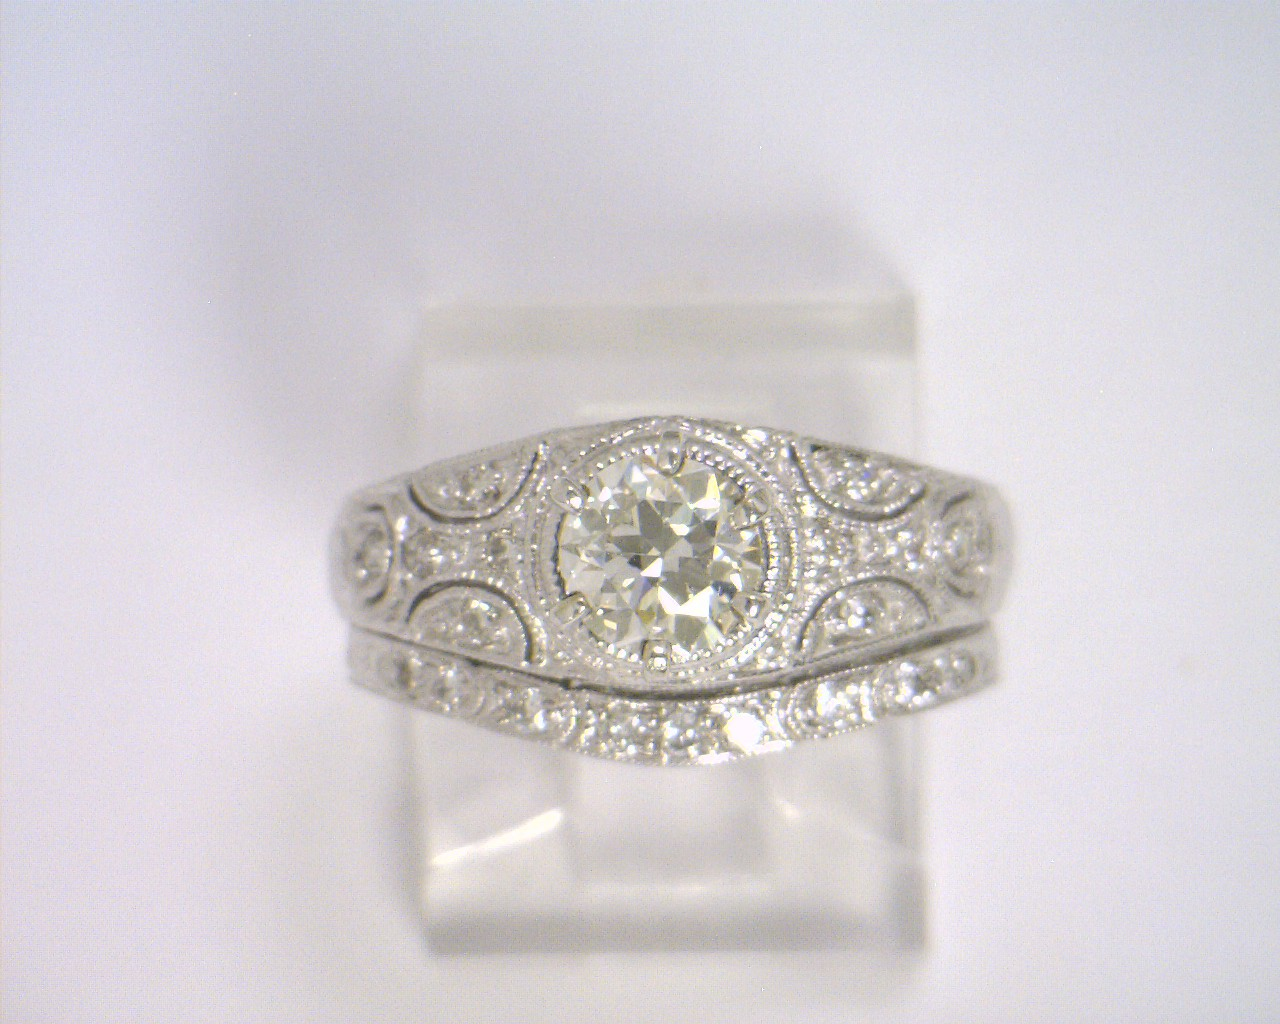 cute rings white engagement lbhpyrh gold wedding filigree ring diamond